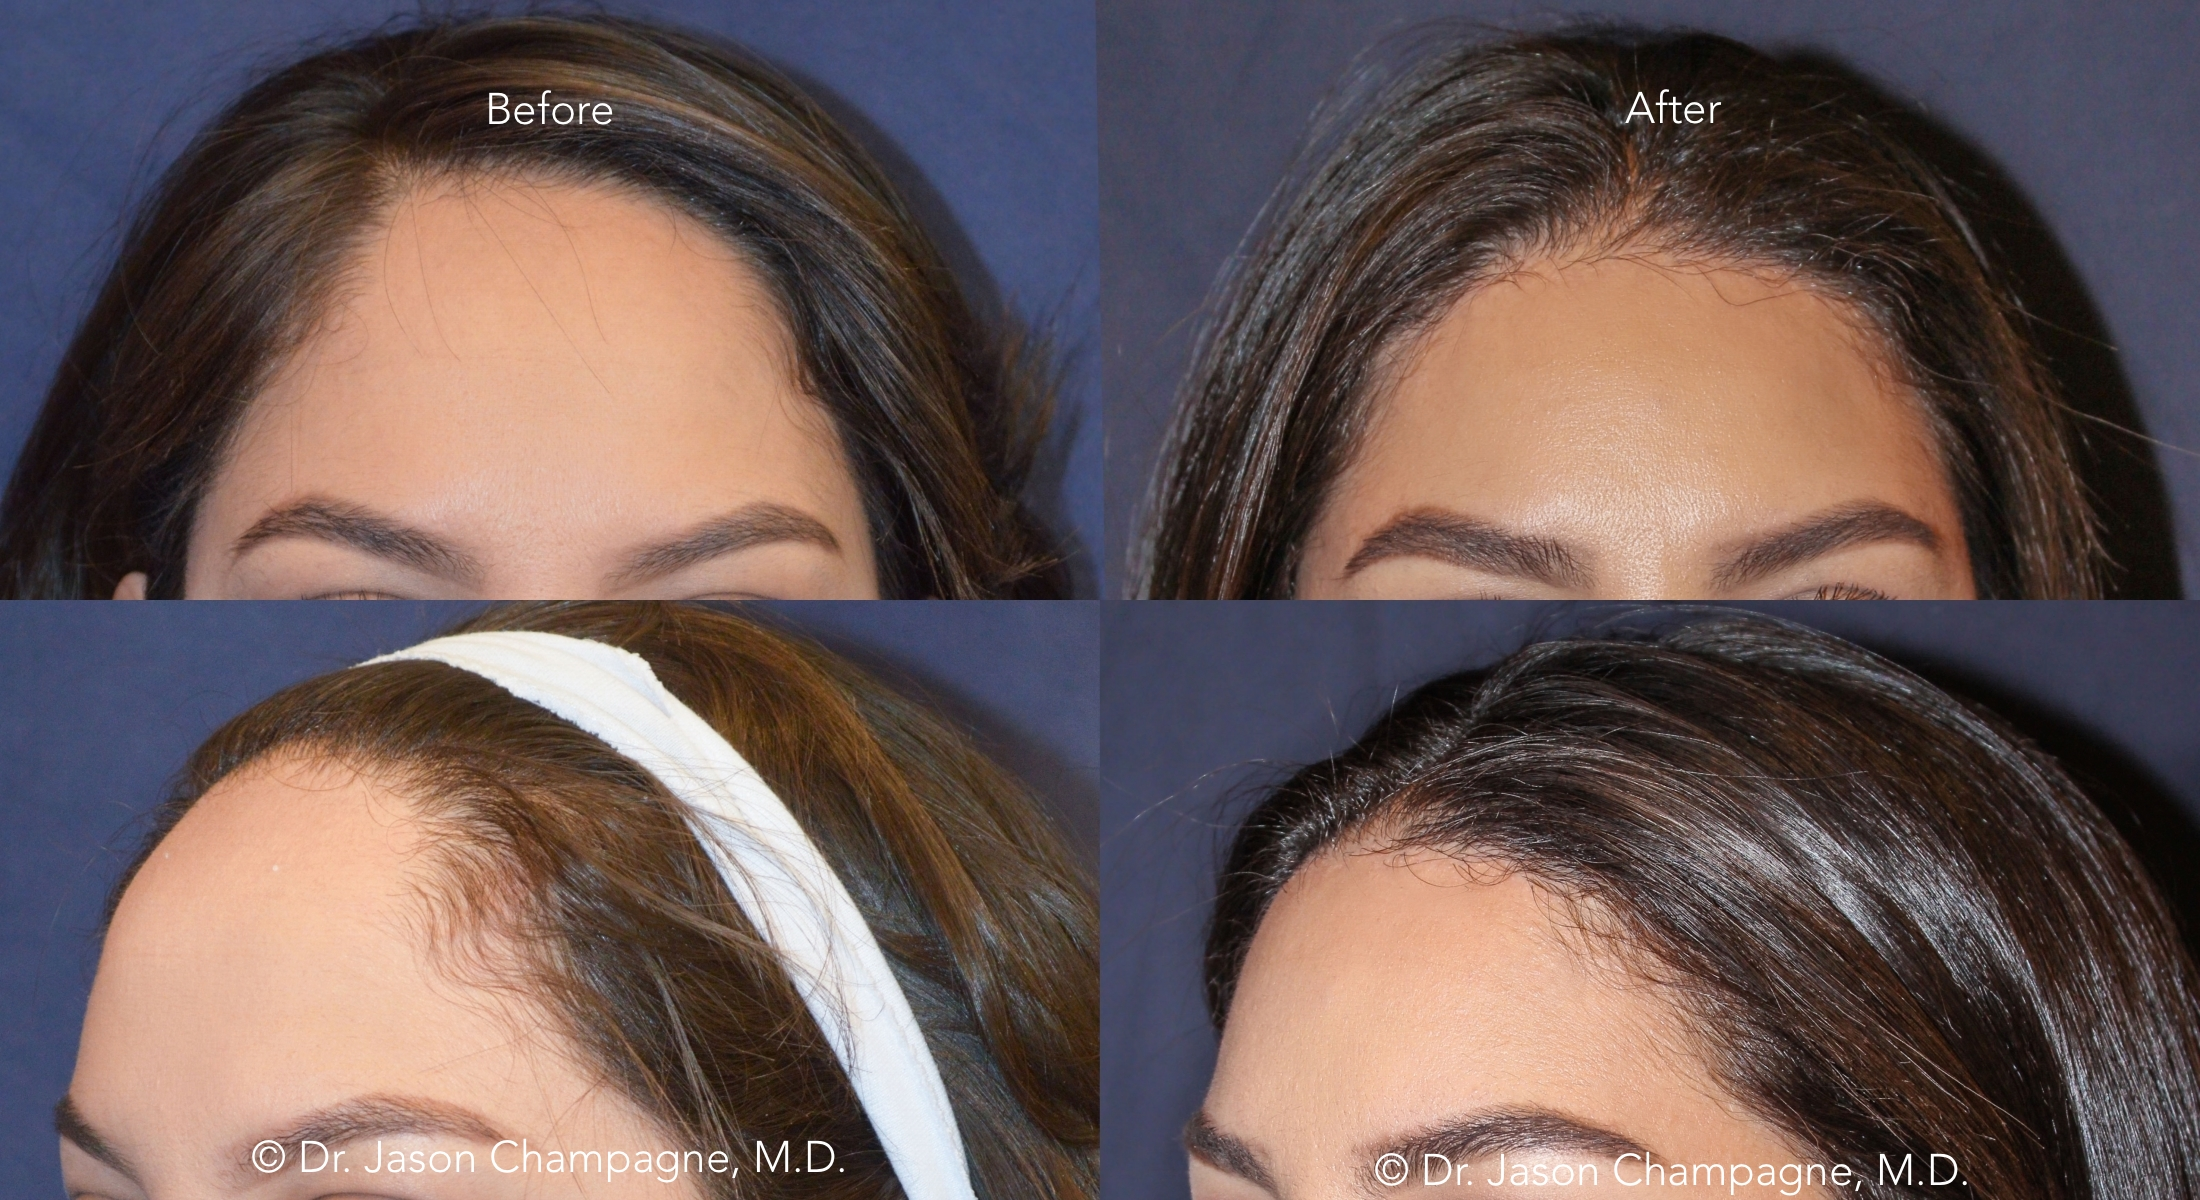 Dr-Jason-Champagne-Hairline-Lowering-Before-and-After.jpg